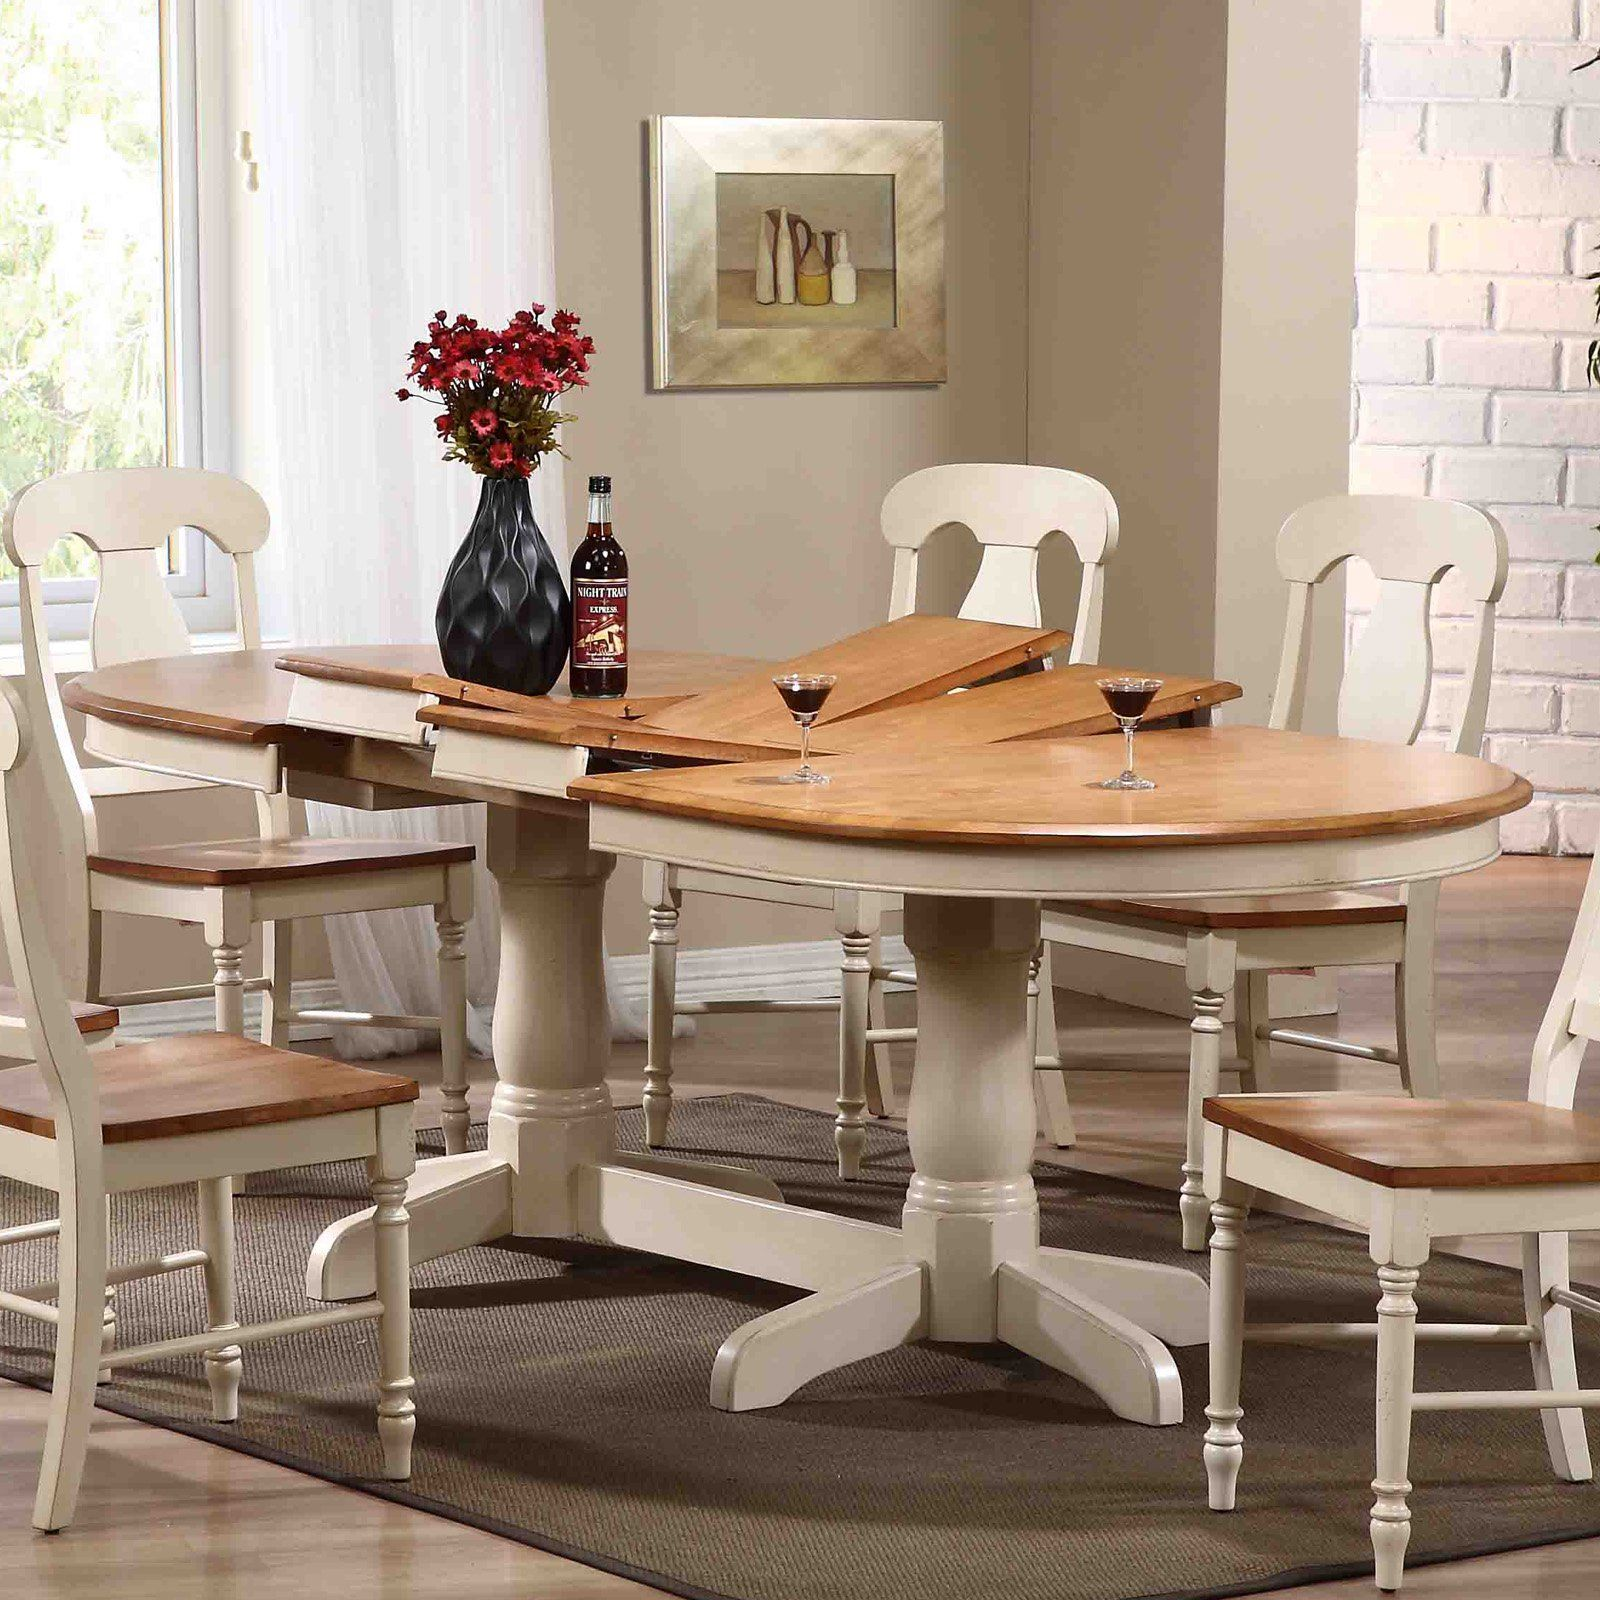 Iconic Furniture Oval Pedestal Dining Table The Best Part About - Traditional oval dining table